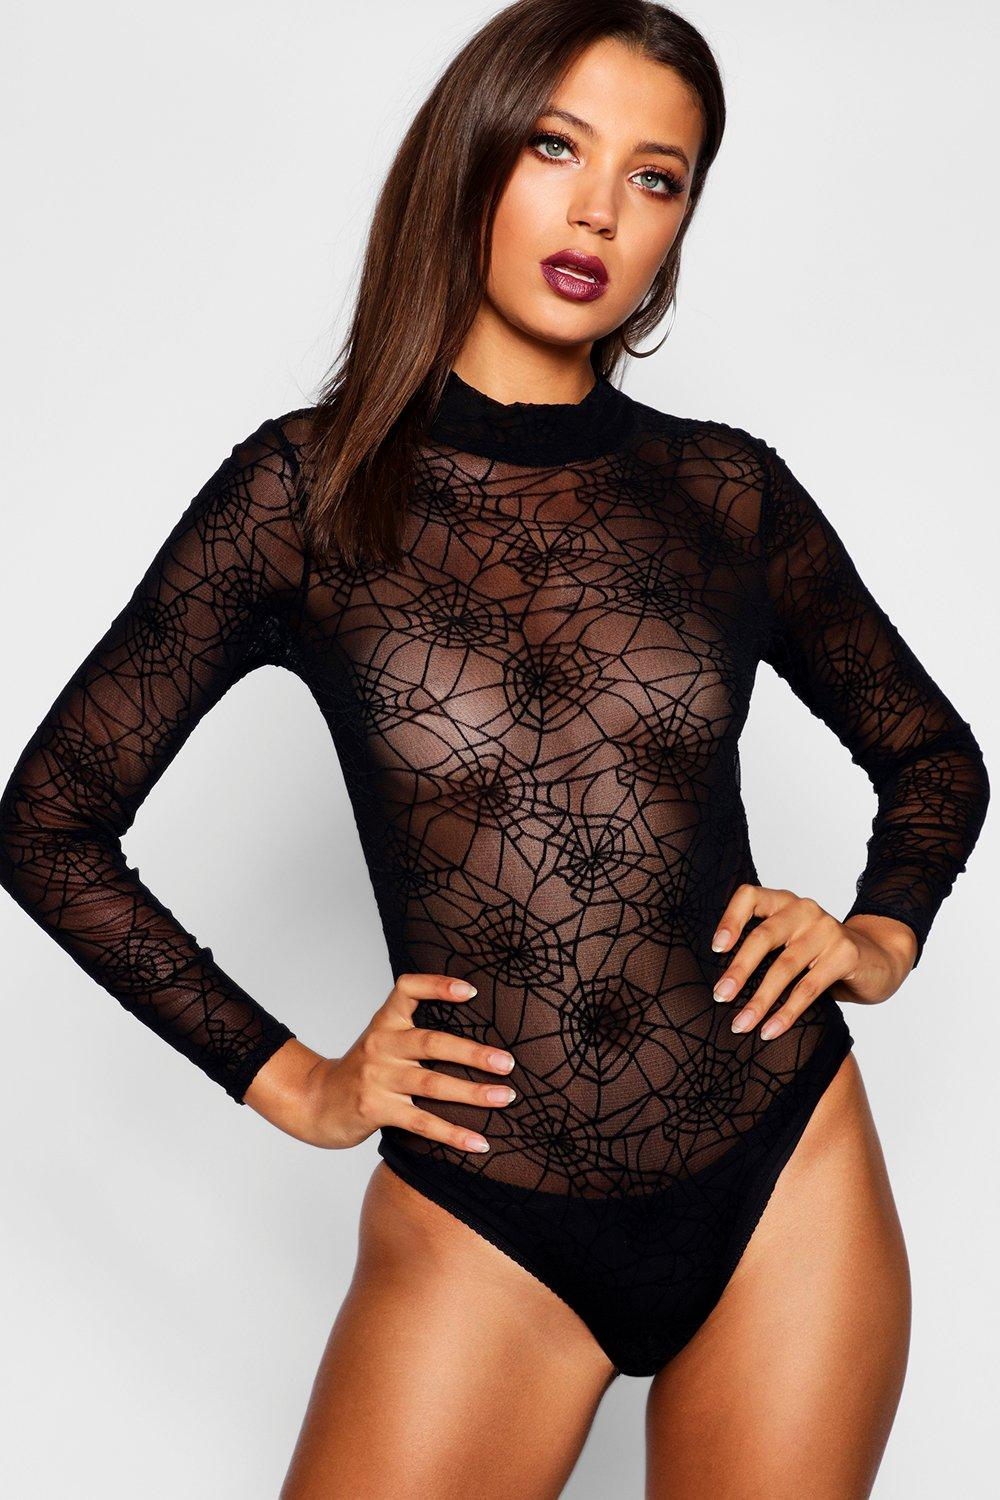 Mesh Spider Tall Maisie Halloween Web Bodysuit black x4qIEqa